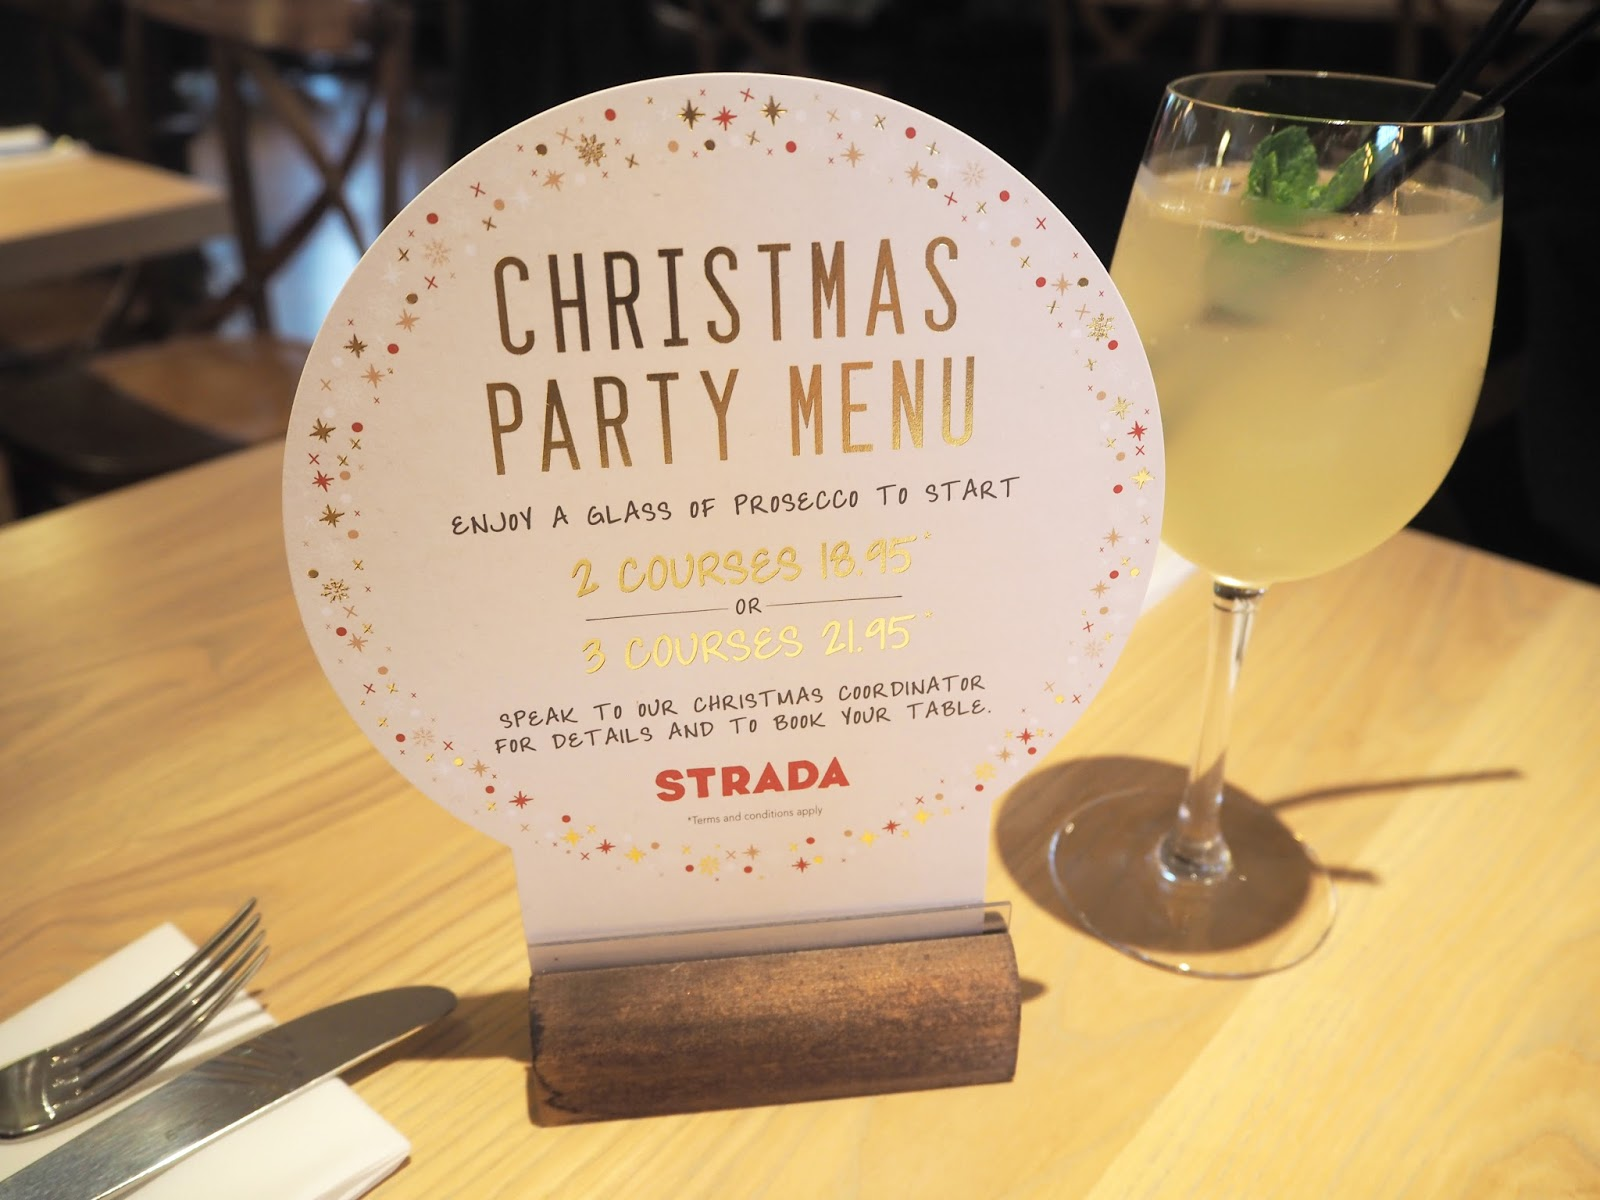 Strada Italian Restaurant, Horsham, UK Blogger, Restaurant Review, Italian Food, Food Blogger West Sussex Blogger, Katie Kirk Loves